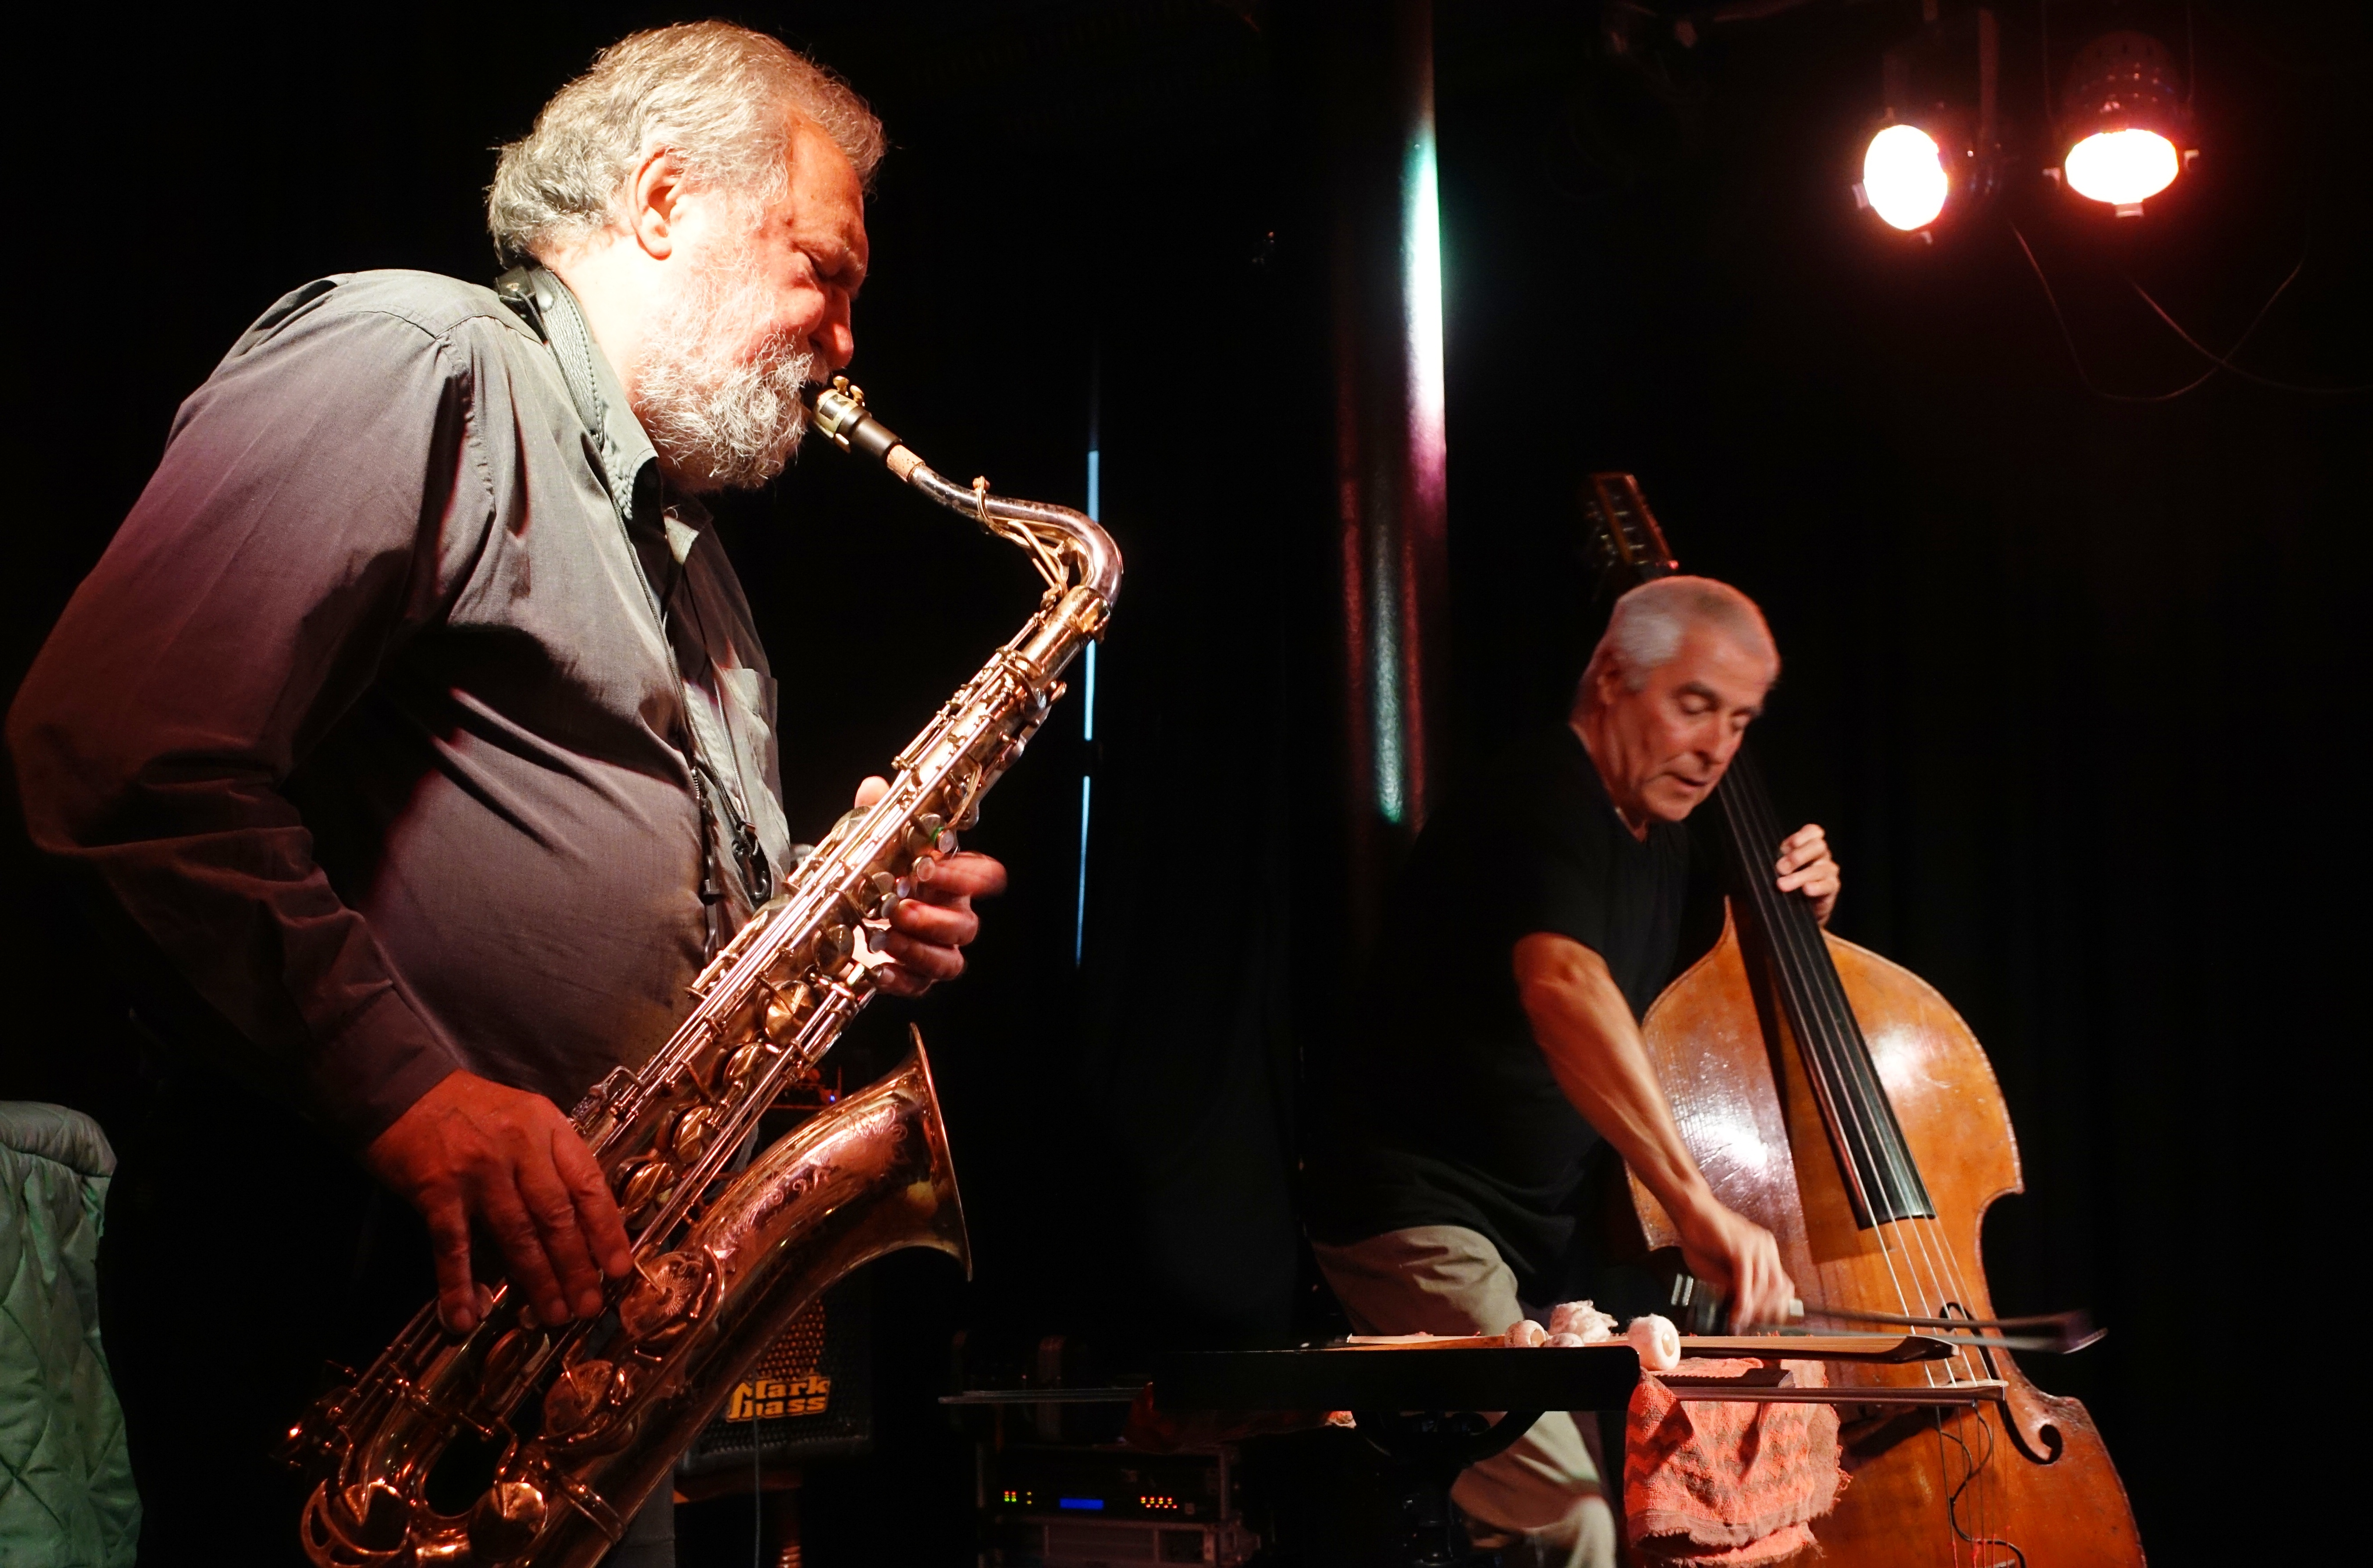 Evan Parker and Barry Guy at the Vortex, London in July 2018